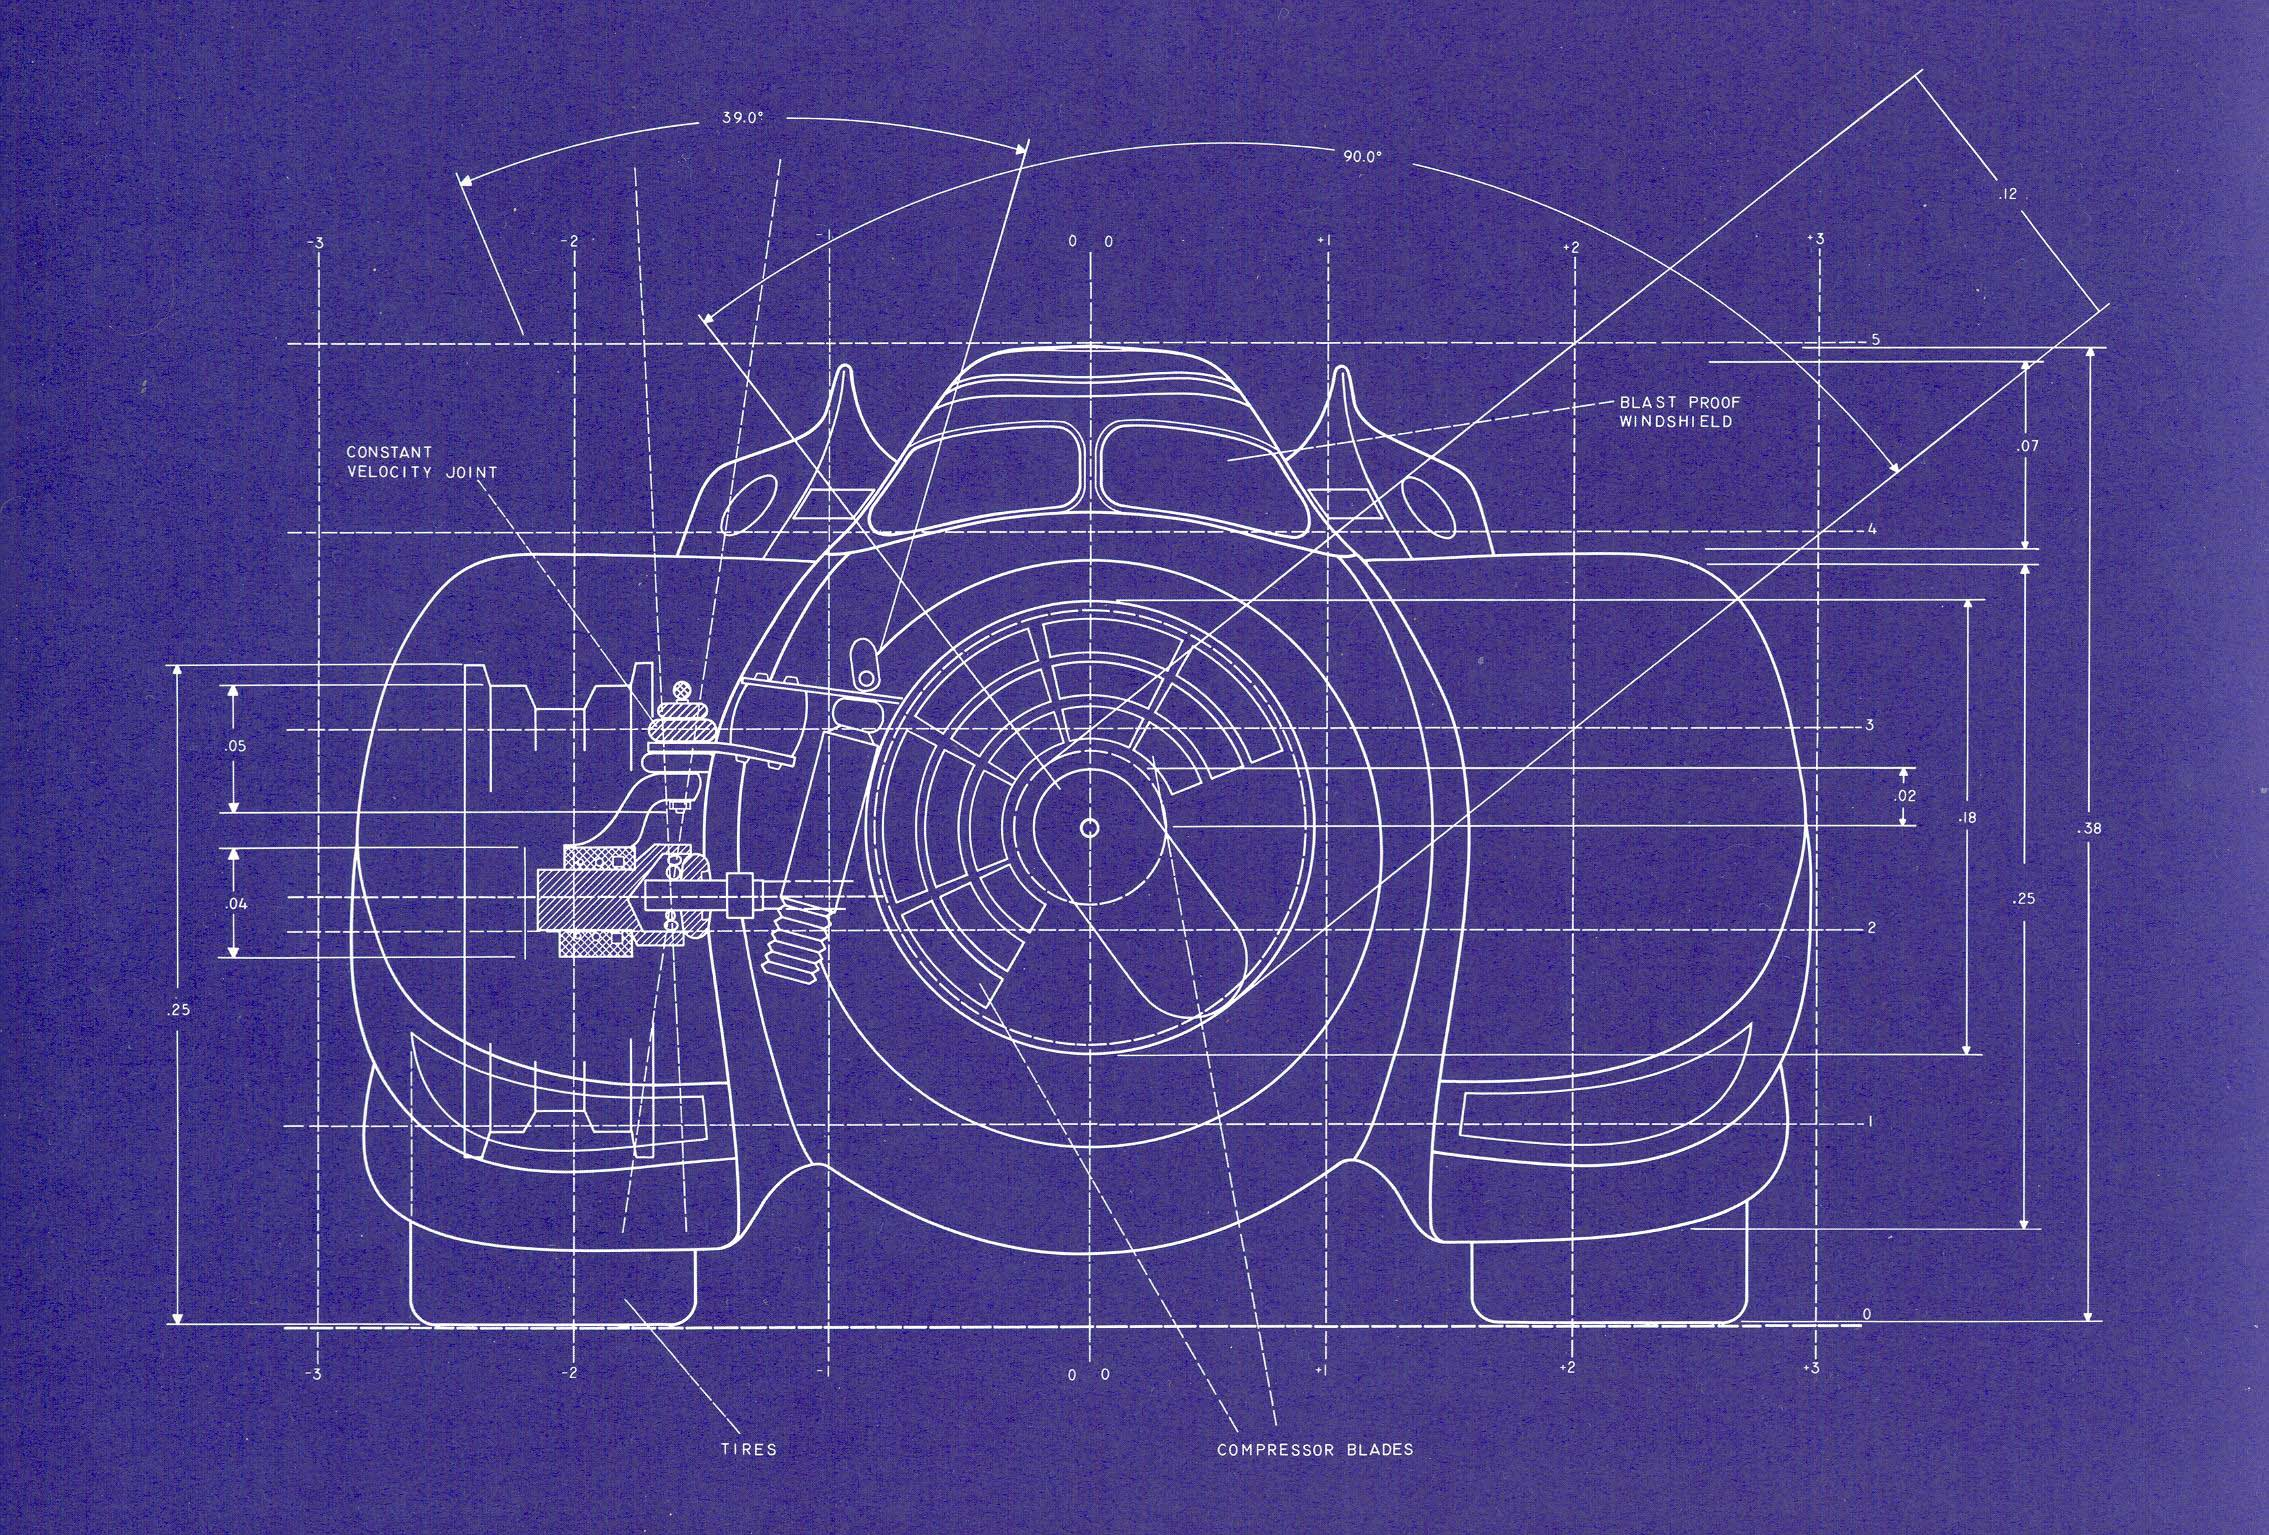 1989 Batmobile Blueprints Blueprint Engine Diagram